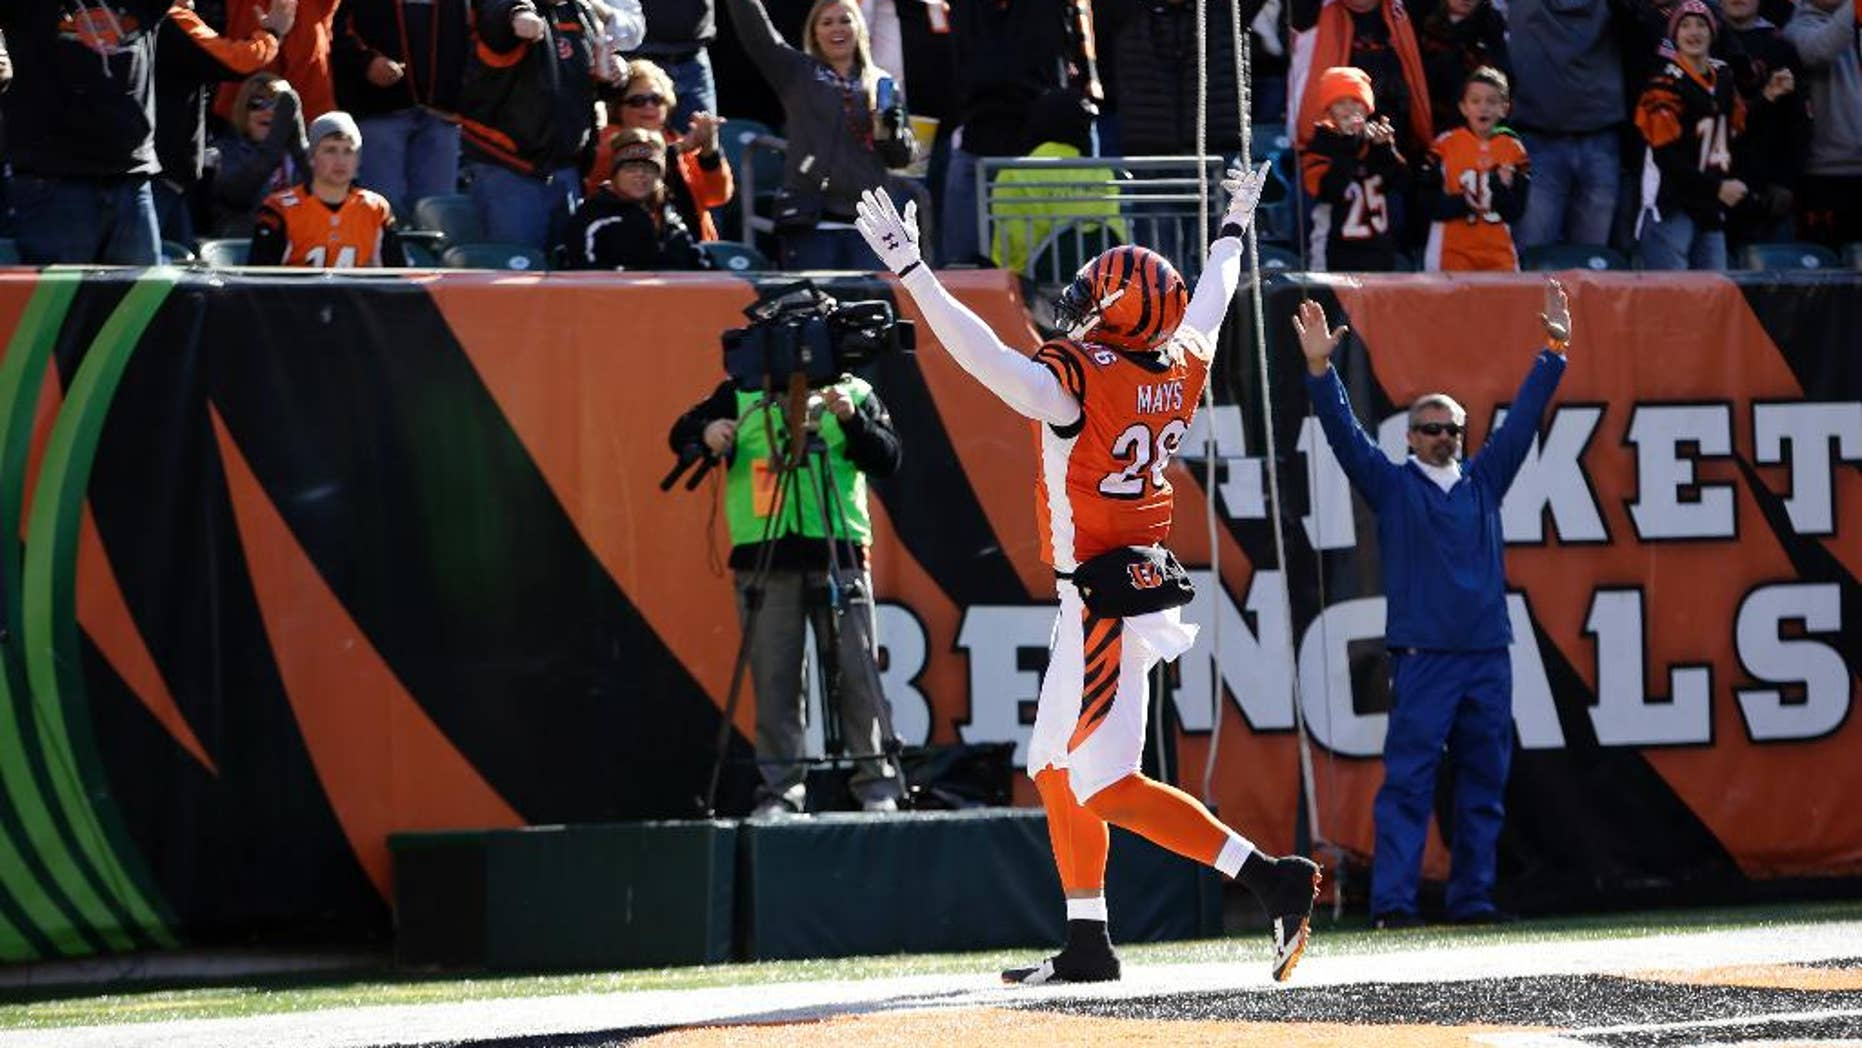 Cincinnati Bengals free safety Taylor Mays celebrates a safety after he blocked a punt during the first half of an NFL football game against the Jacksonville Jaguars  in Cincinnati, Sunday, Nov. 2, 2014. (AP Photo/AJ Mast)